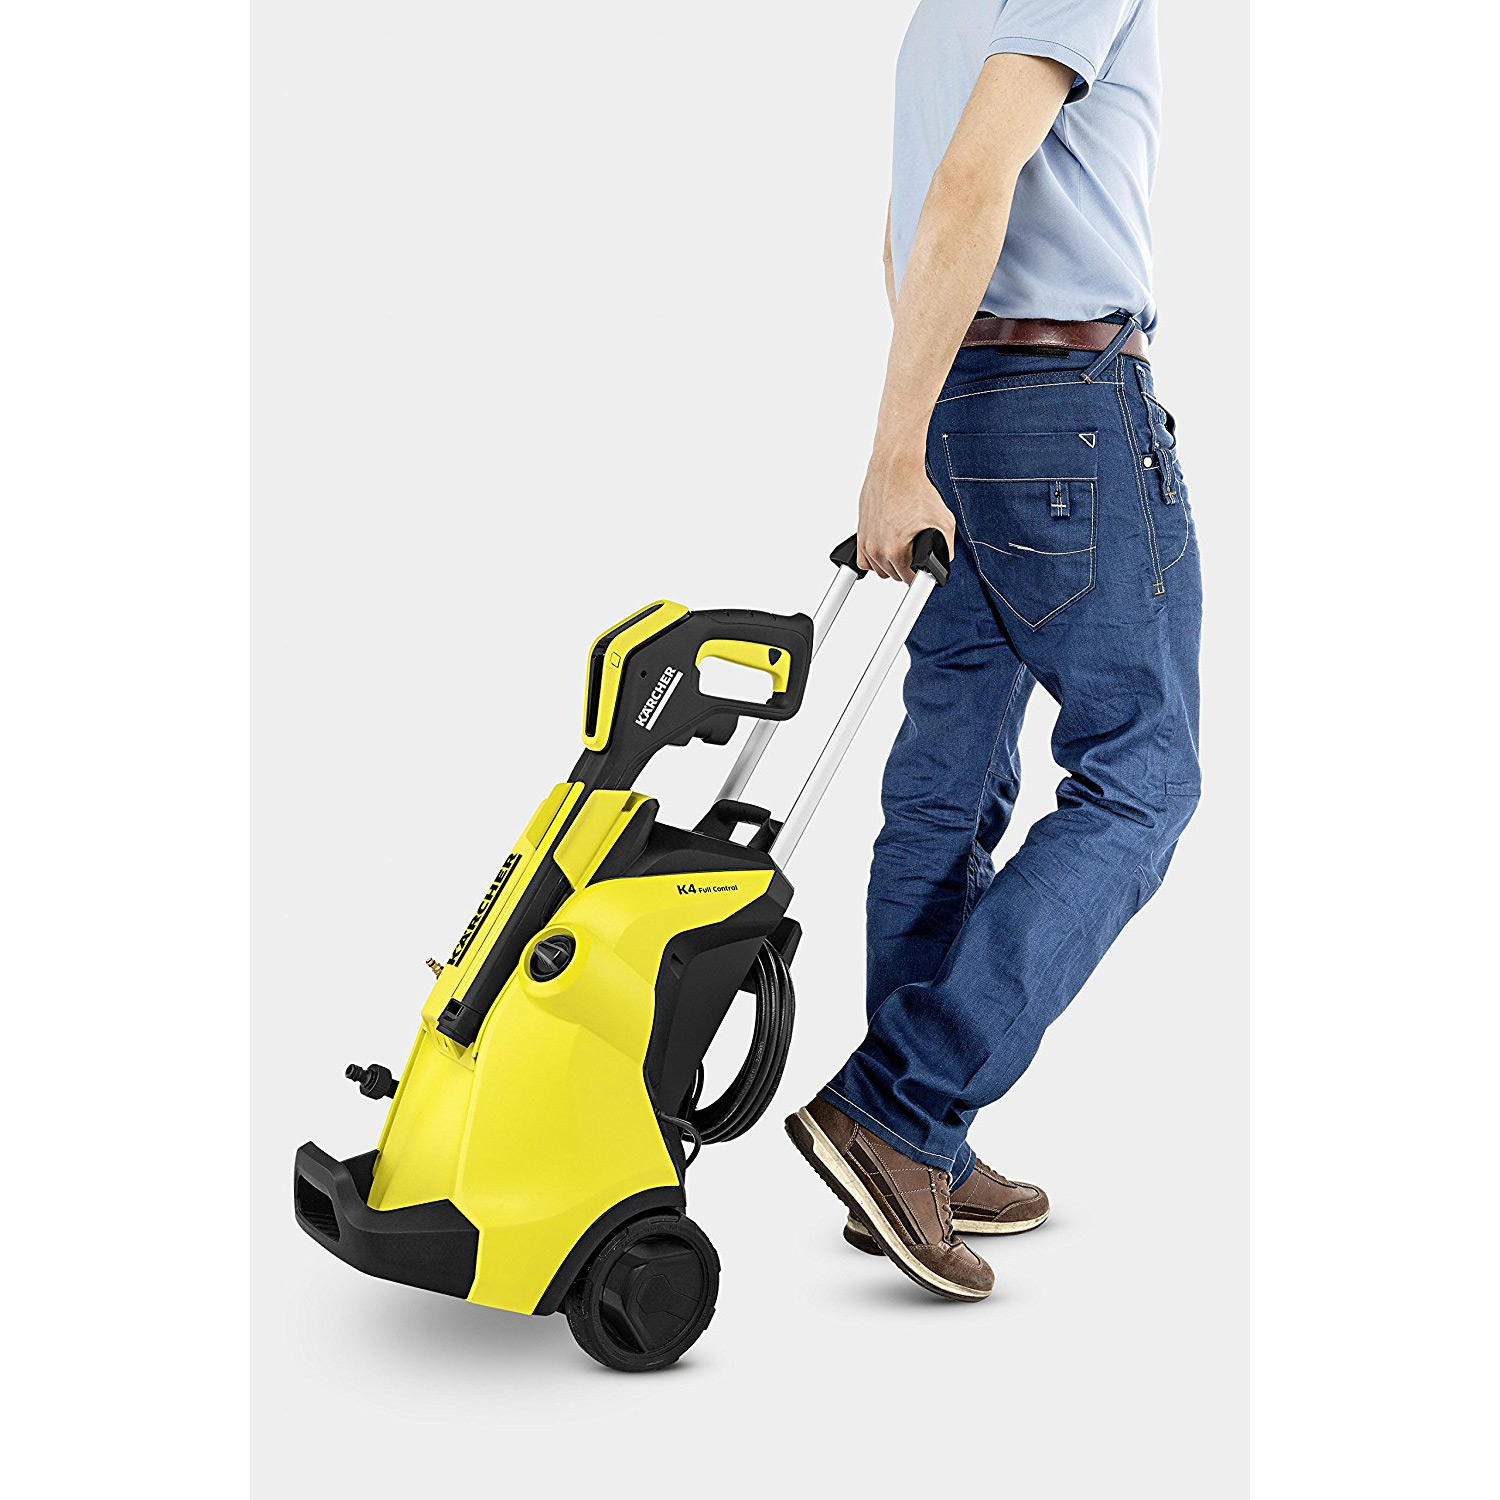 may xit rua xe karcher k4 full control